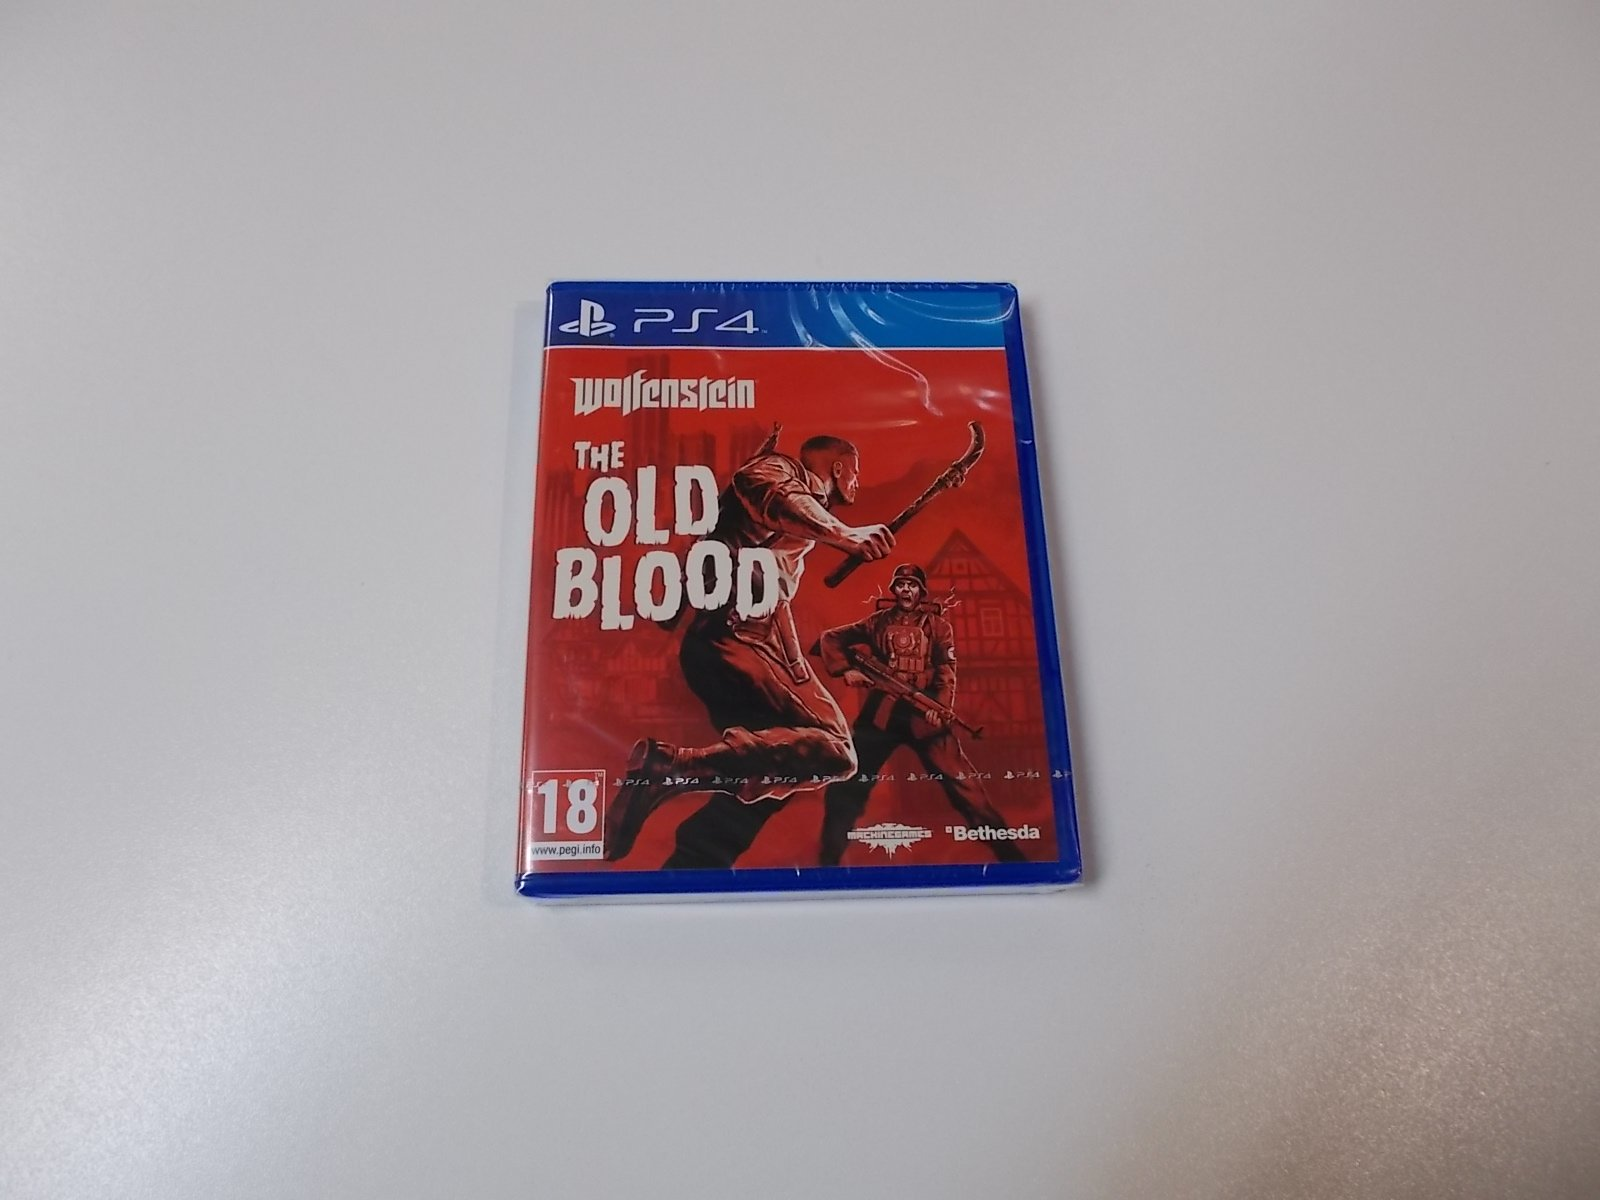 Wolfenstein The Old Blood - GRA Ps4 - Opole 0467